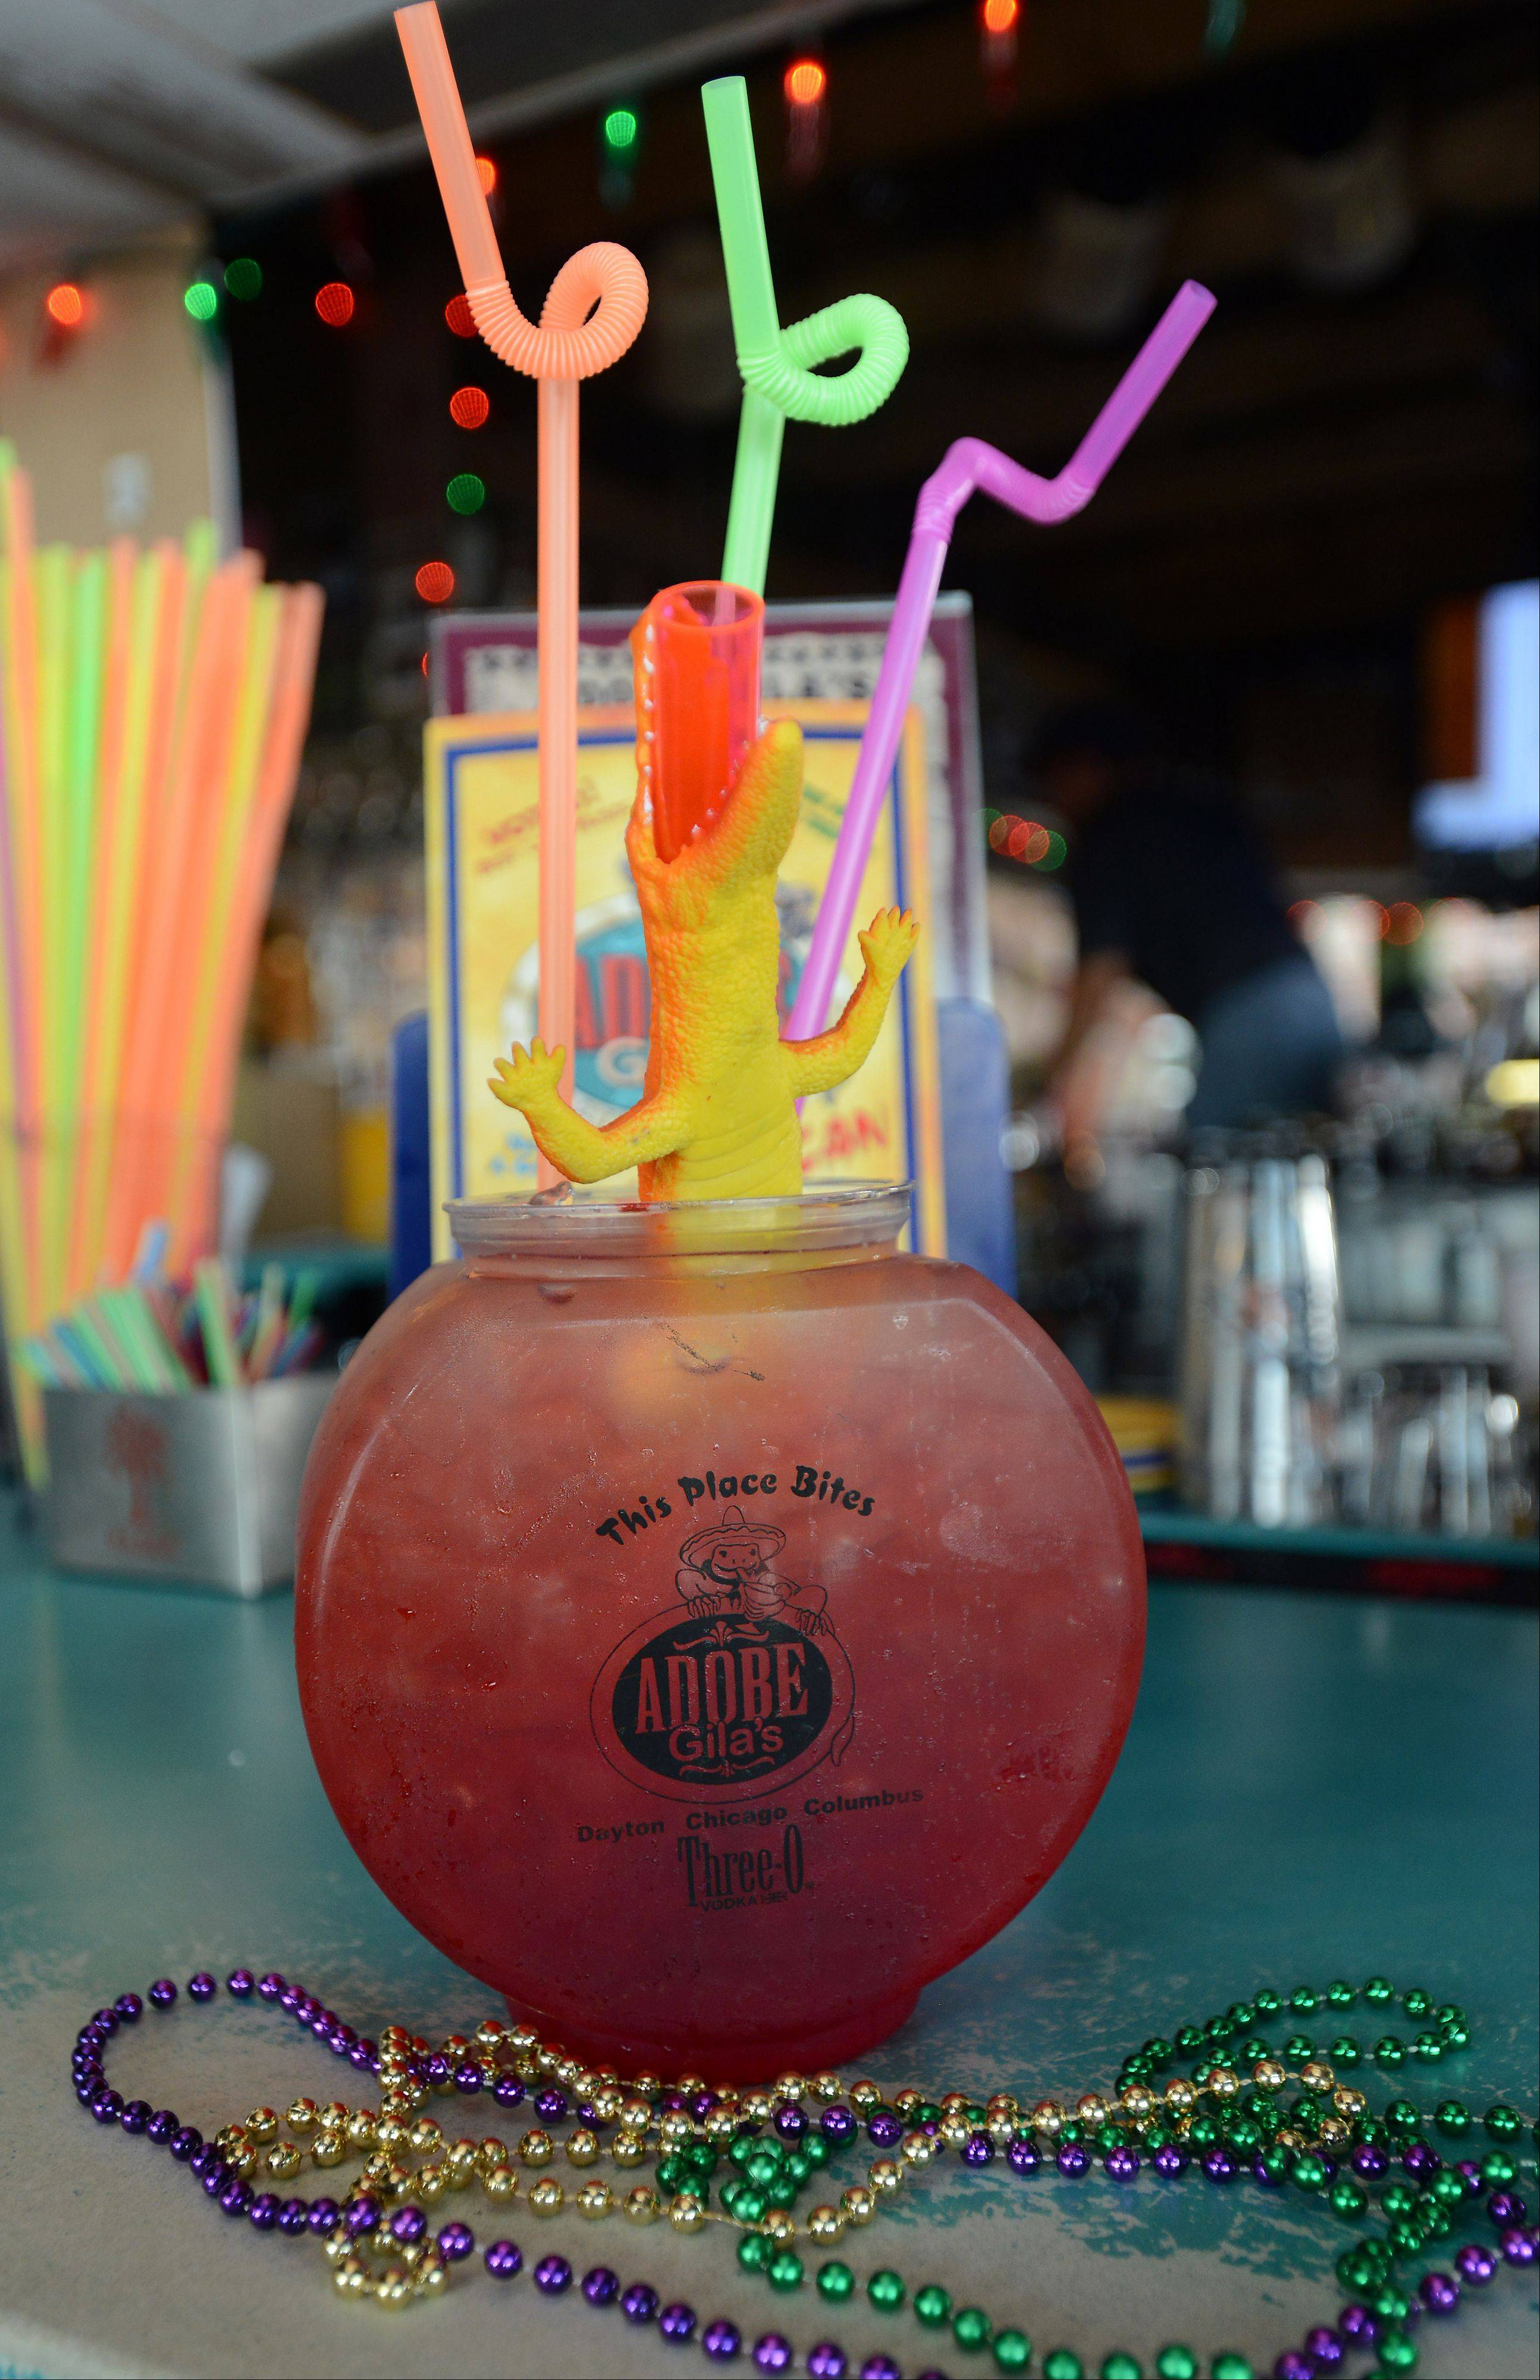 Thirsty? Invite a few friends to tackle an 84-ounce fish bowl filled with colorful alcohol at Adobe Gila's in Rosemont.